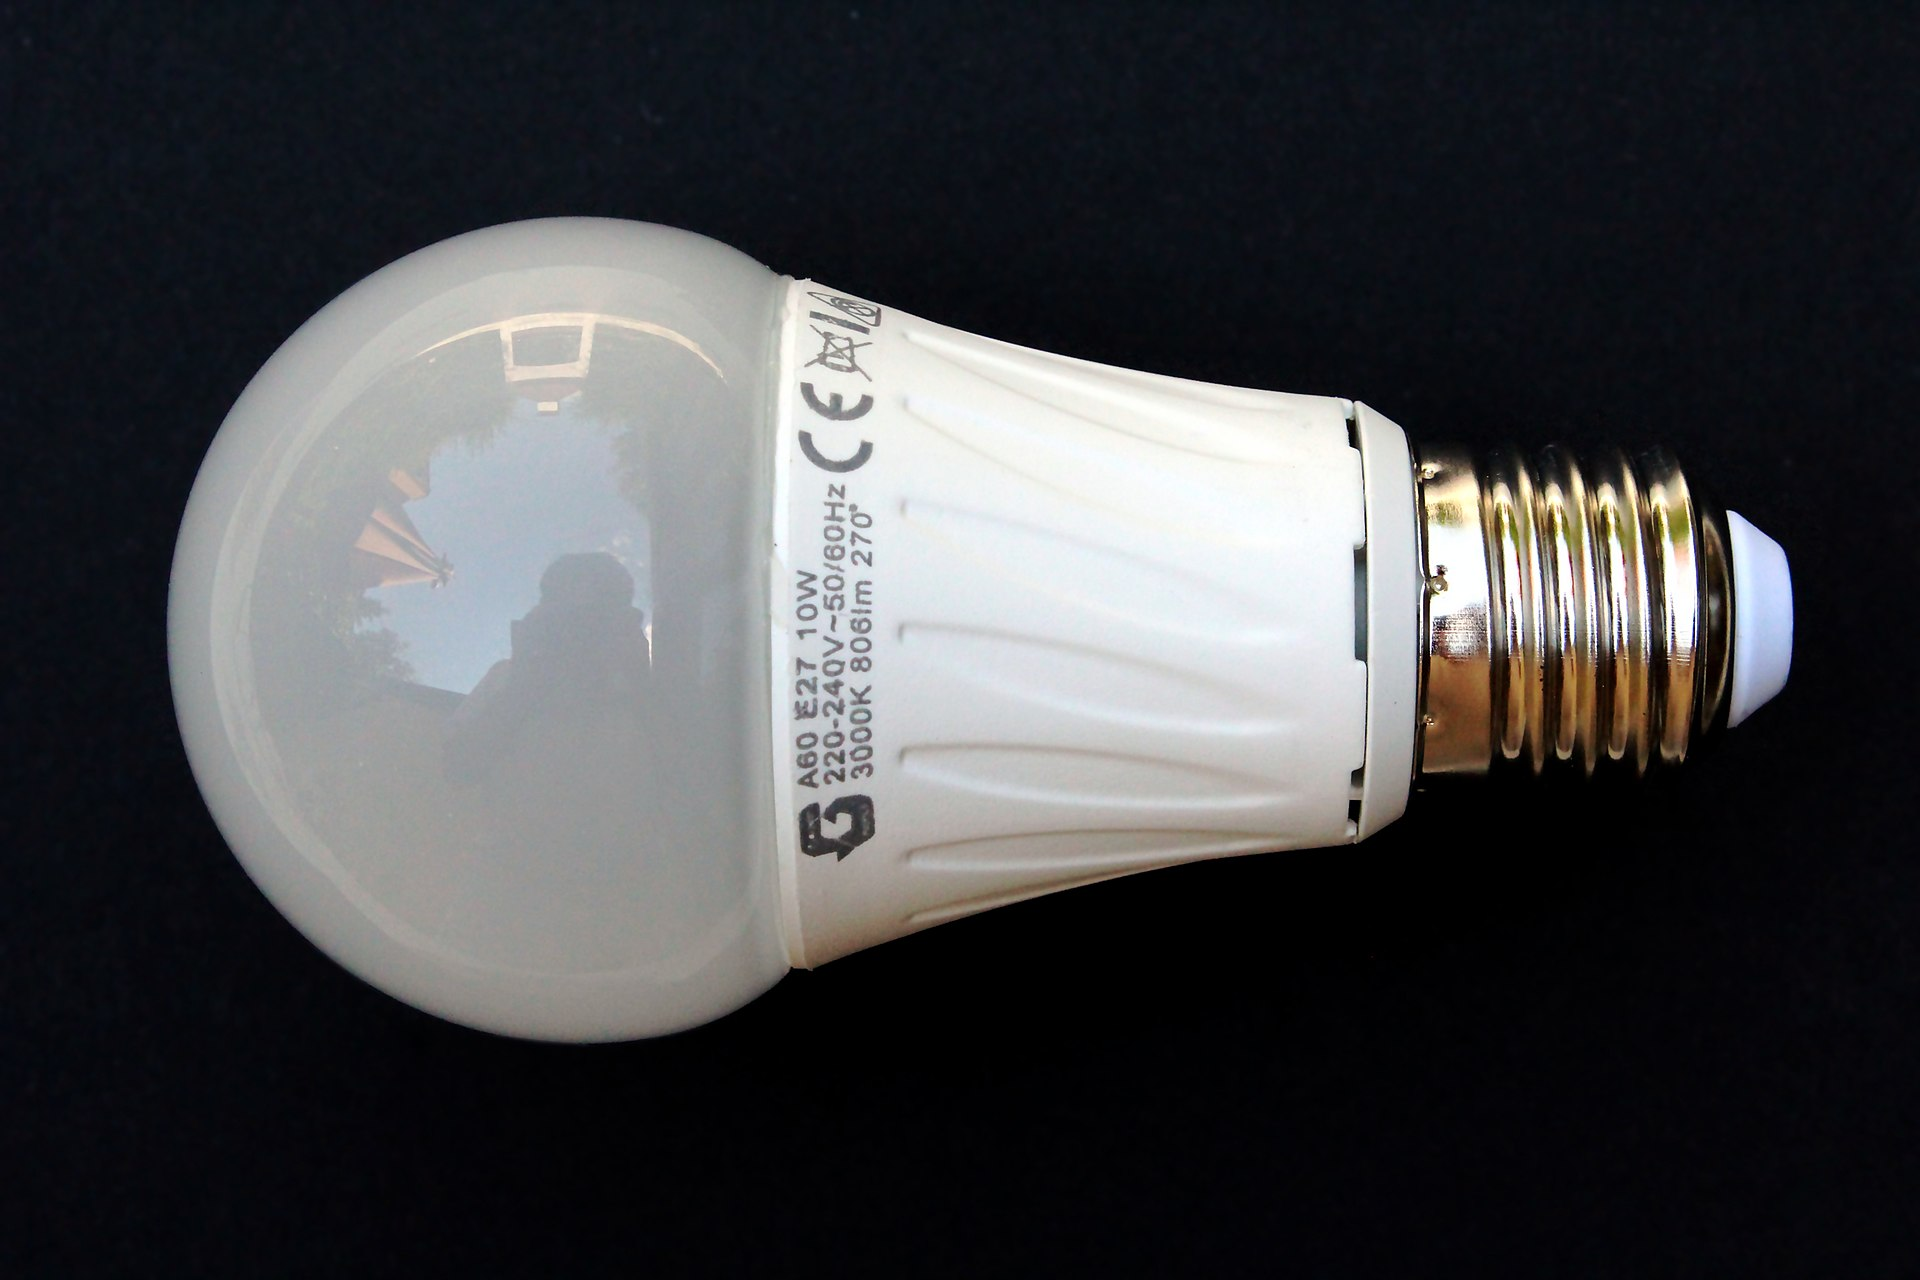 Led lamp wikipedia Light bulb lamps